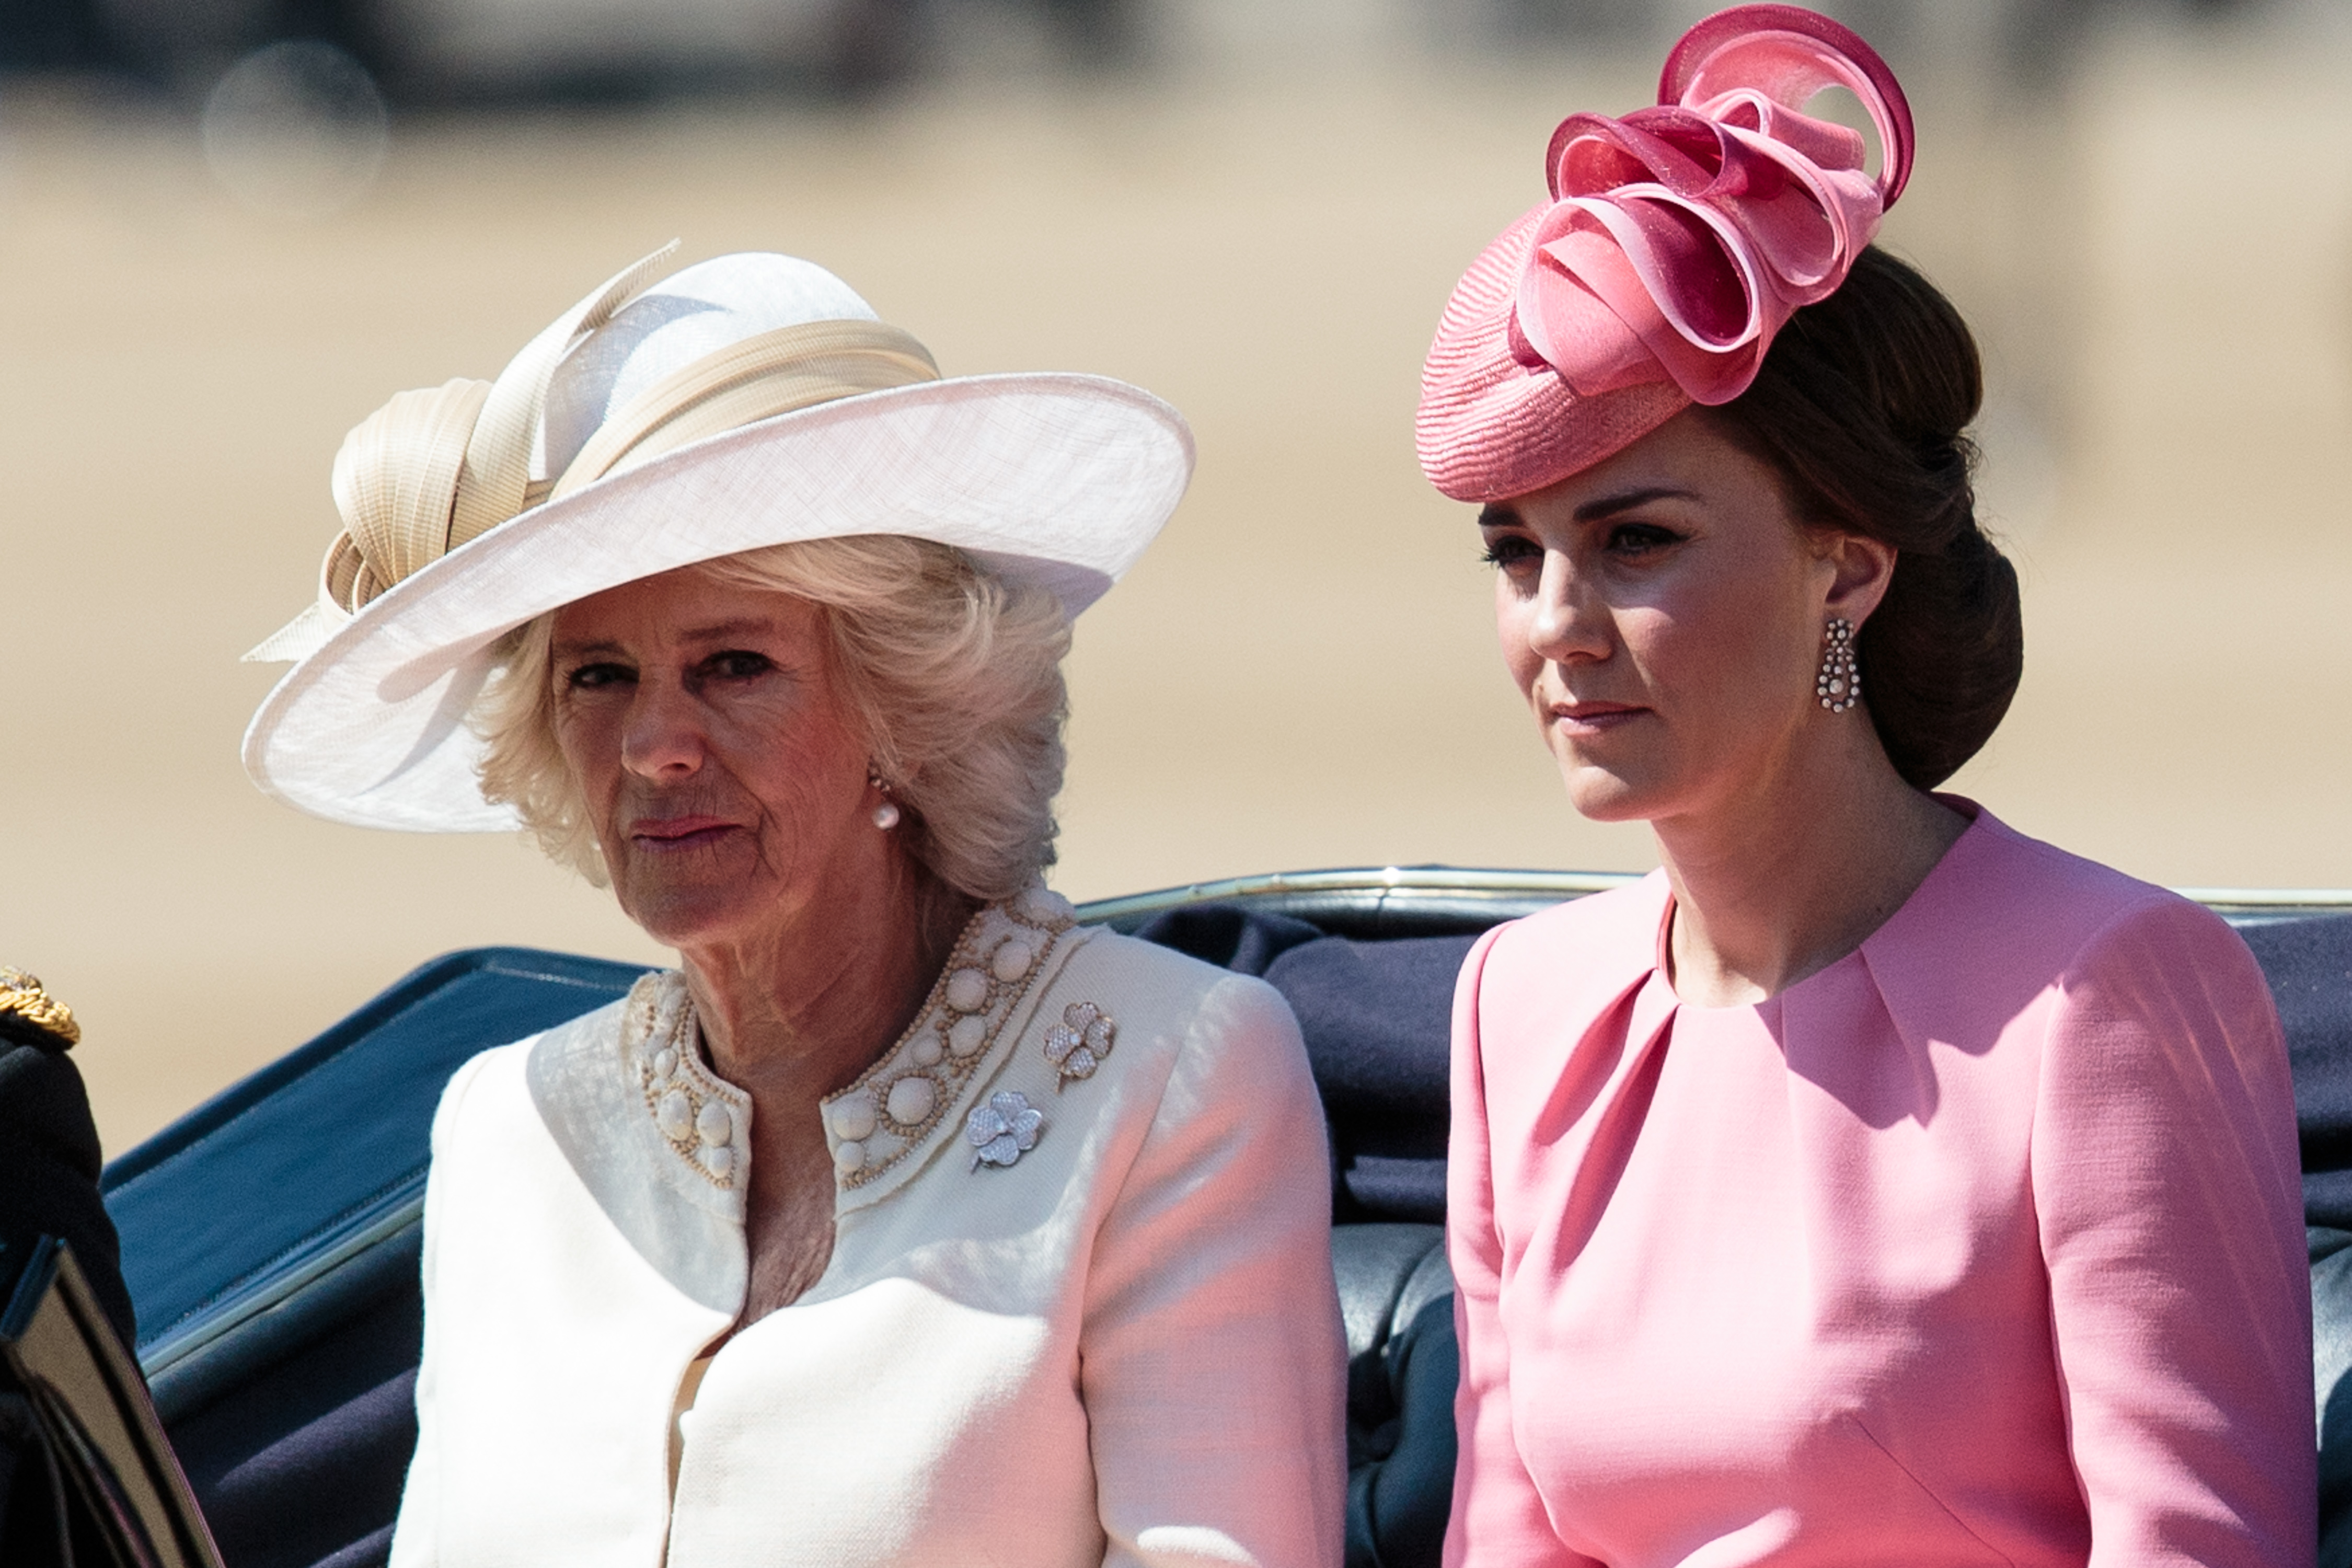 Camilla, Duchess of Cornwall (L) and the Catherine, Duchess of Cambridge (R) arrive at Horse Guards Parade for the annual Trooping The Colour parade on June 17, 2017 in London, England. The annual ceremony is Queen Elizabeth II's birthday parade and dates back to the 17th Century when the Colours of a regiment were used as a rallying point in battle.